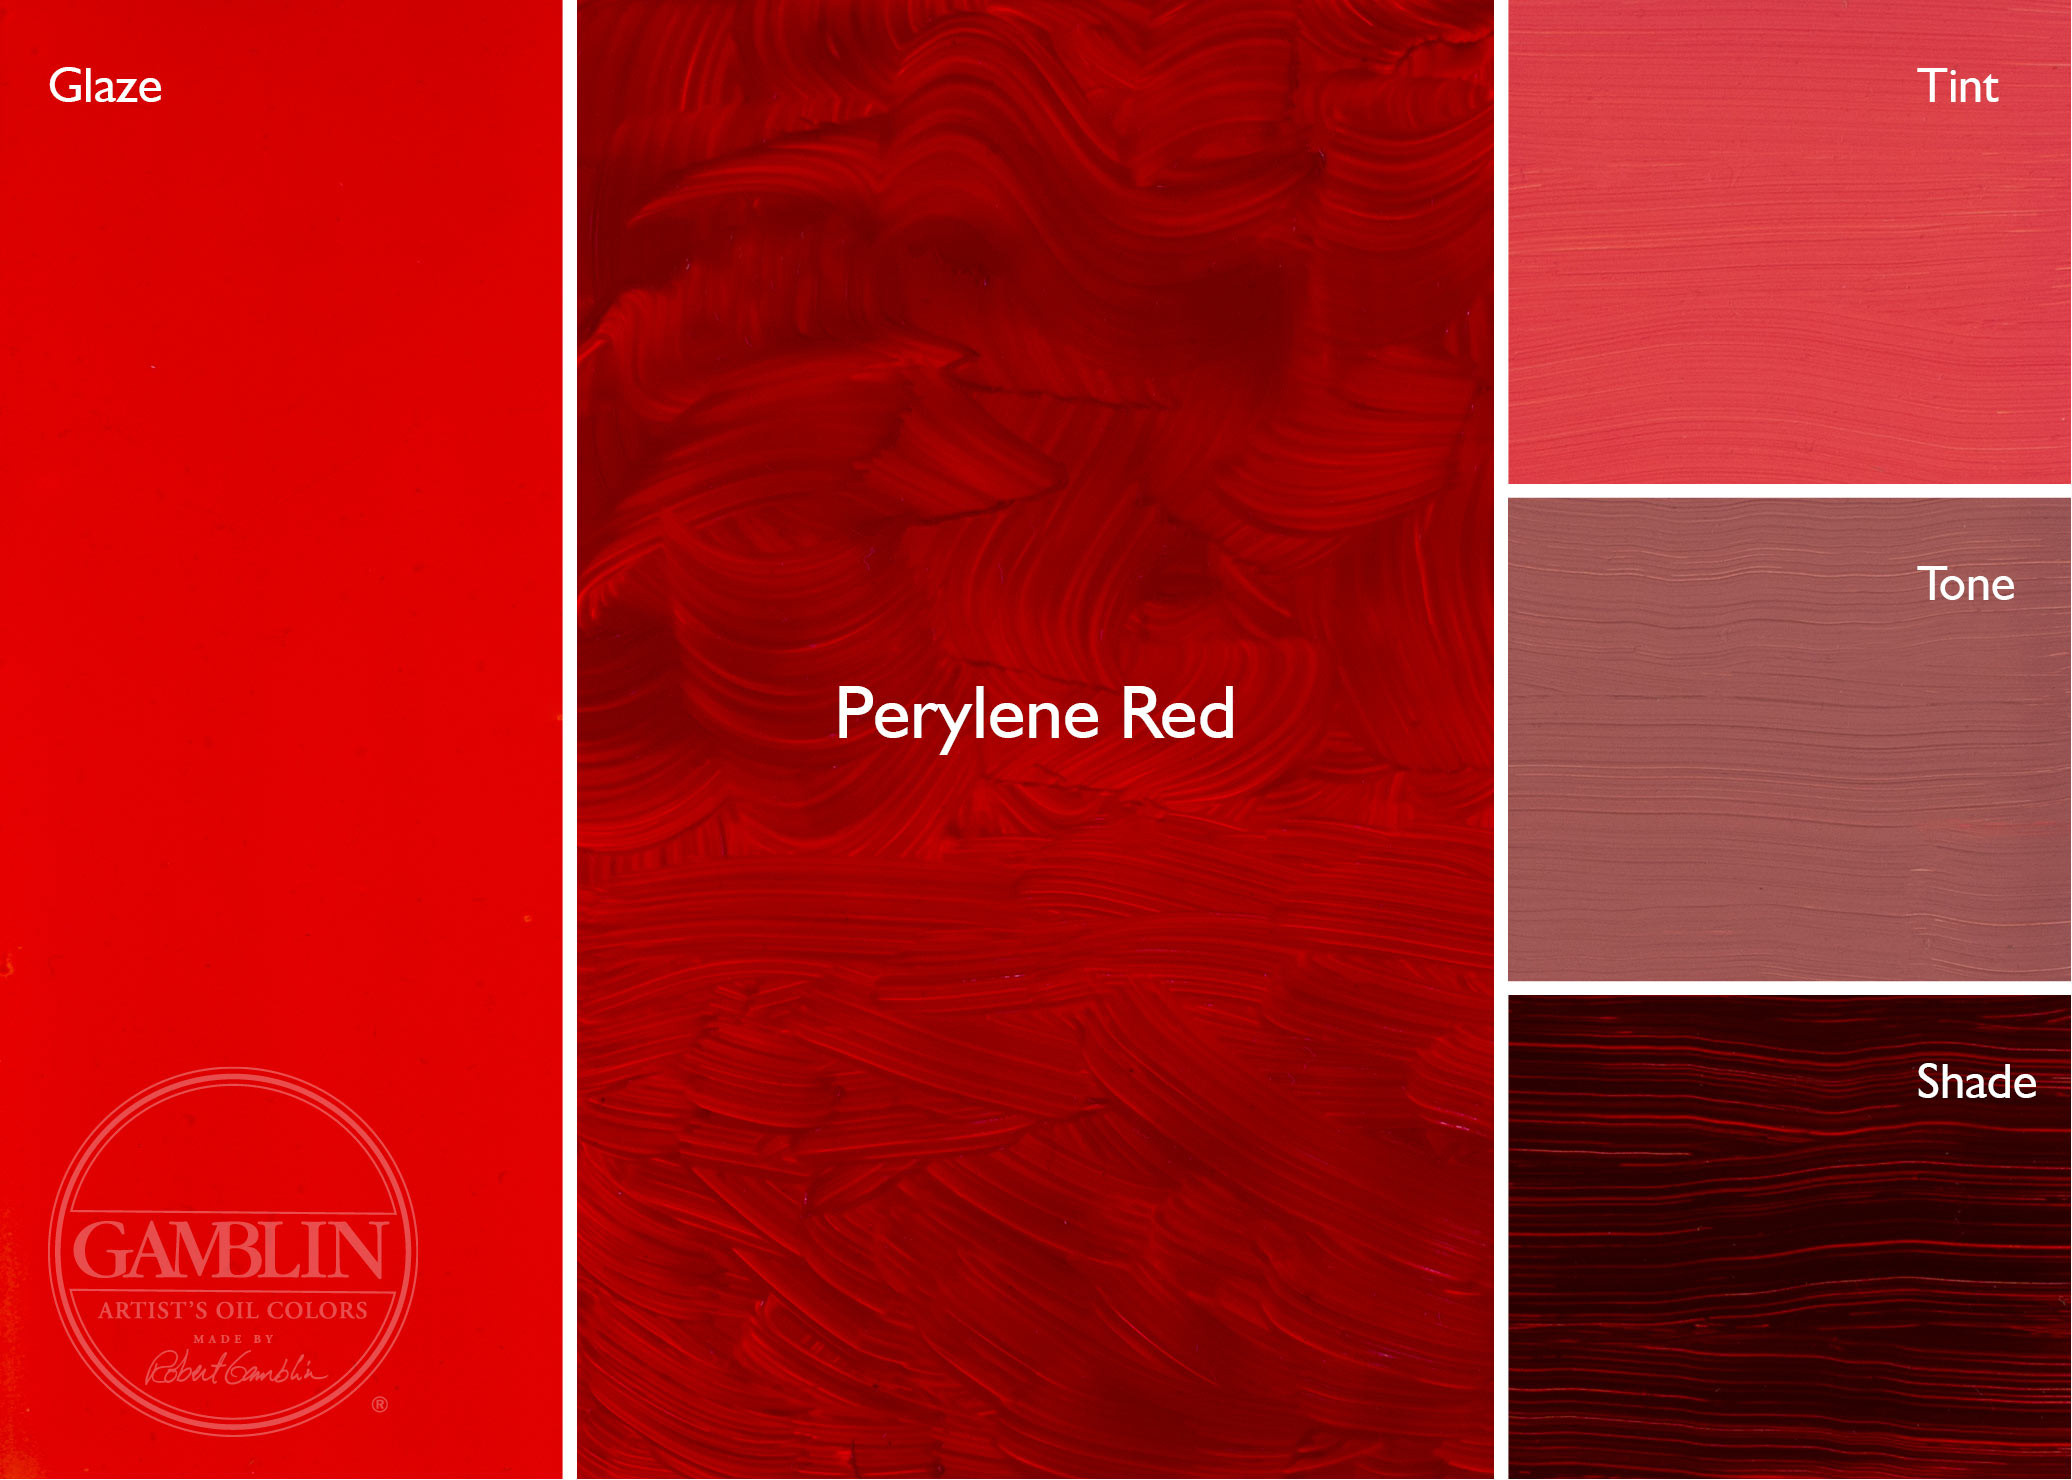 Best ideas about Red Paint Colors . Save or Pin Transparent Glaze Palette Gamblin Artists Colors Now.